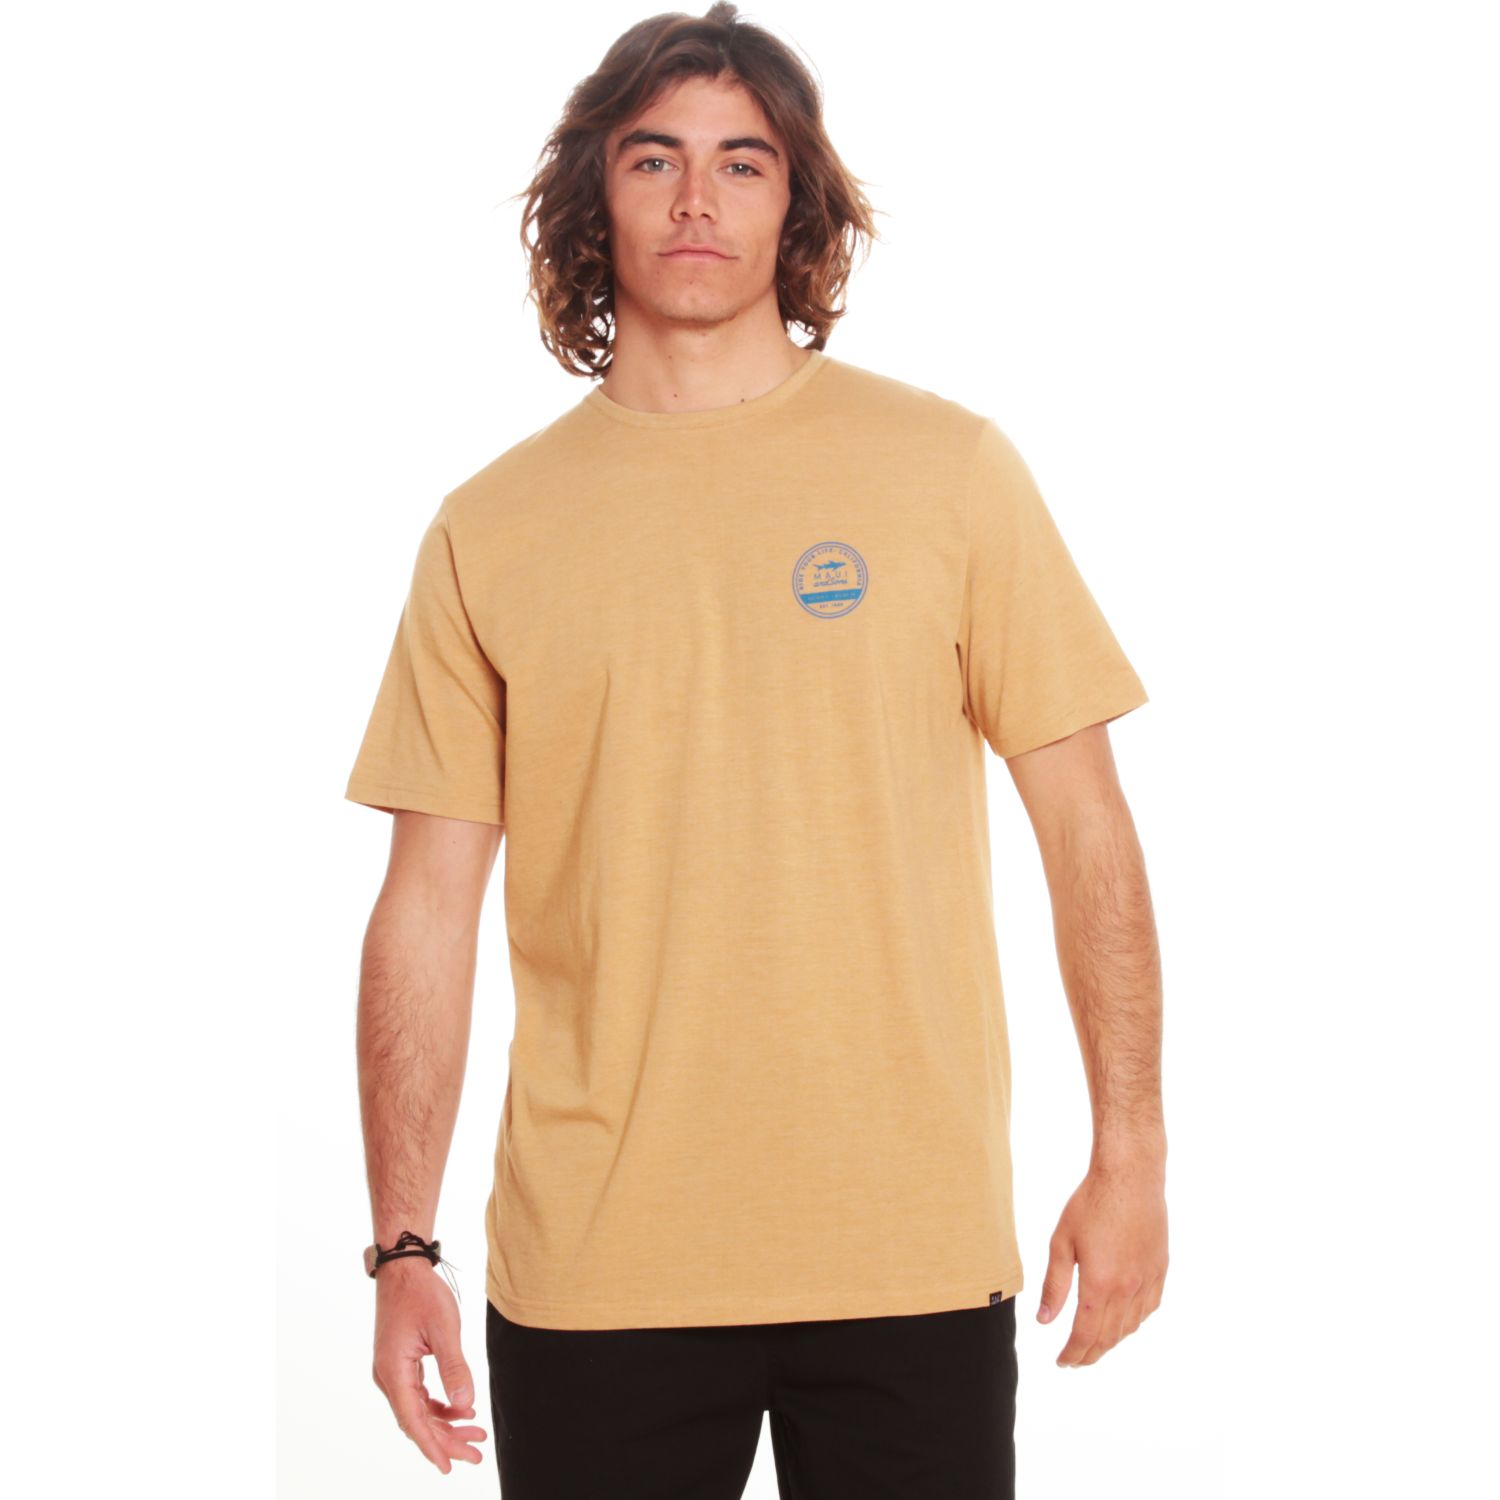 MAUI AND SONS Polera Mc 5p161-Mv20 Amarillo Polos